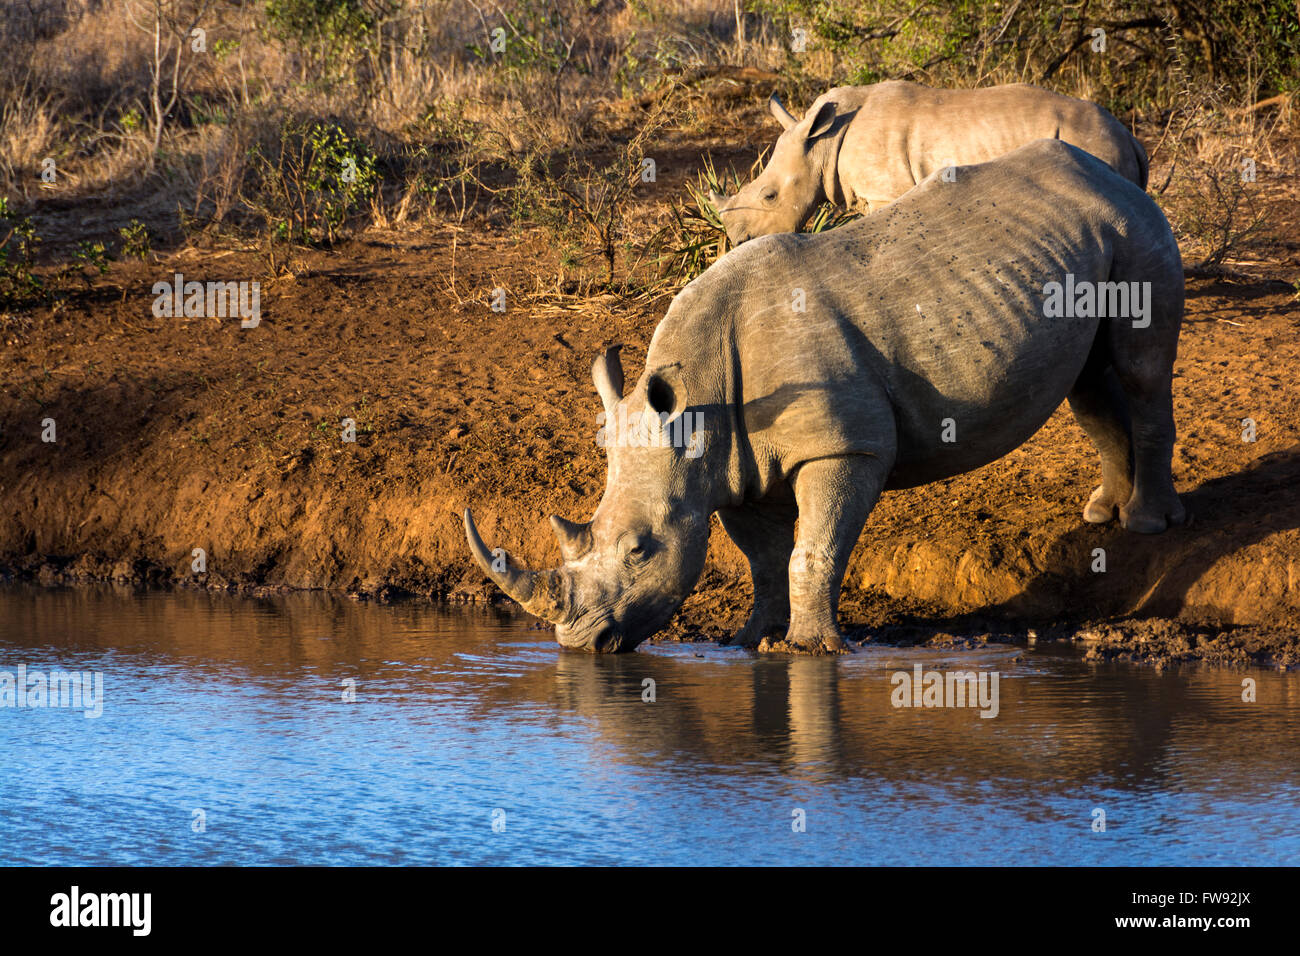 White rhinoceros female with its calf at watering hole in Phinda private game reserve, KwaZulu Natal, South Africa Stock Photo